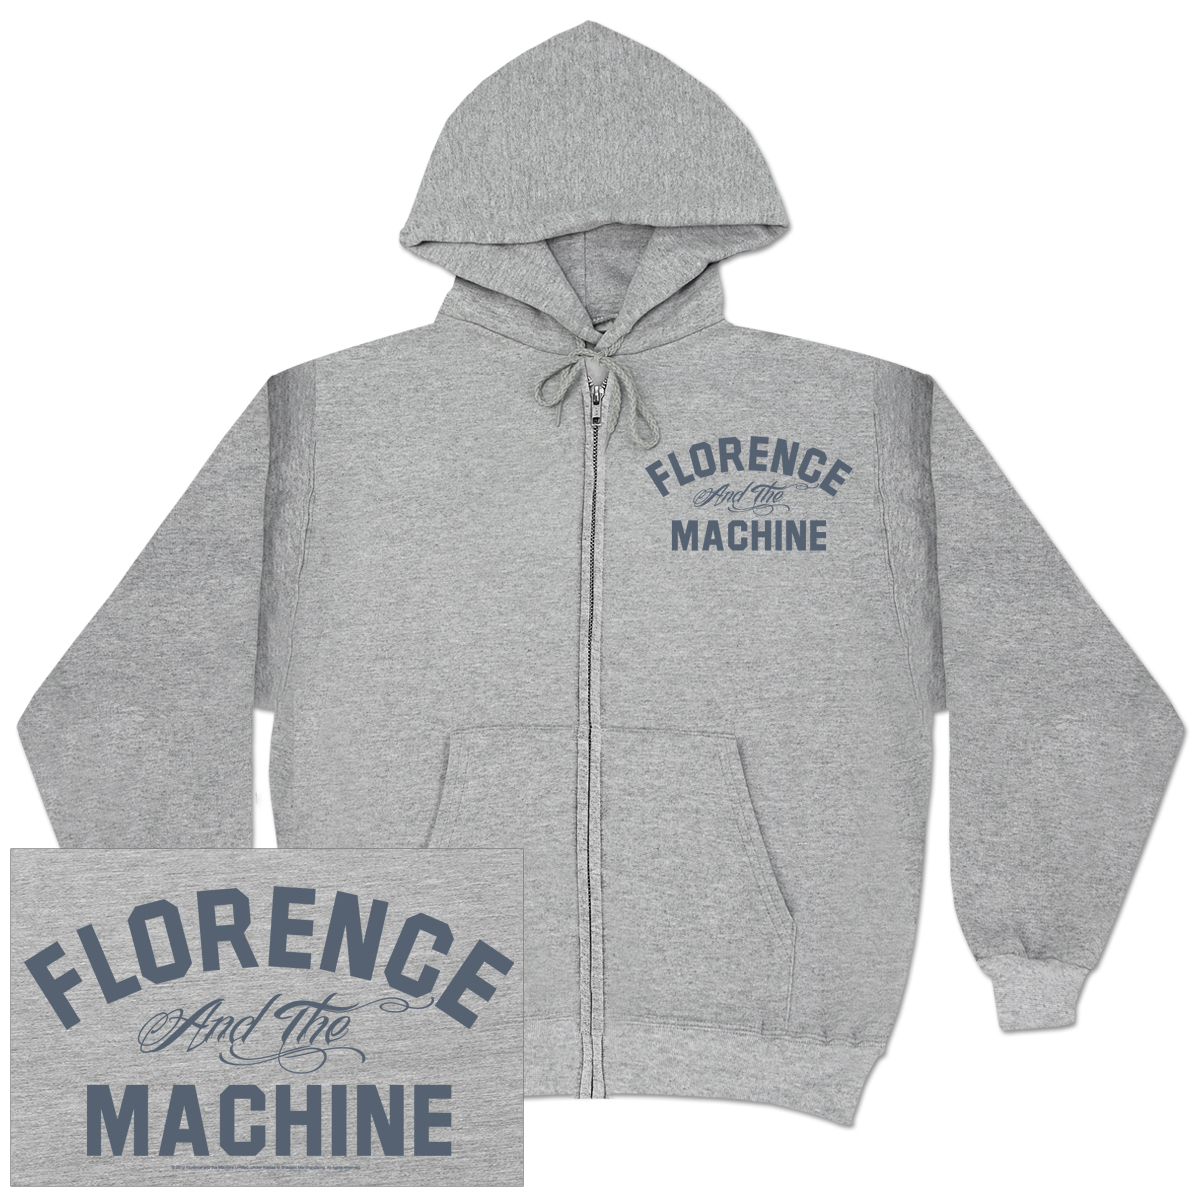 florence and the machine merchandise